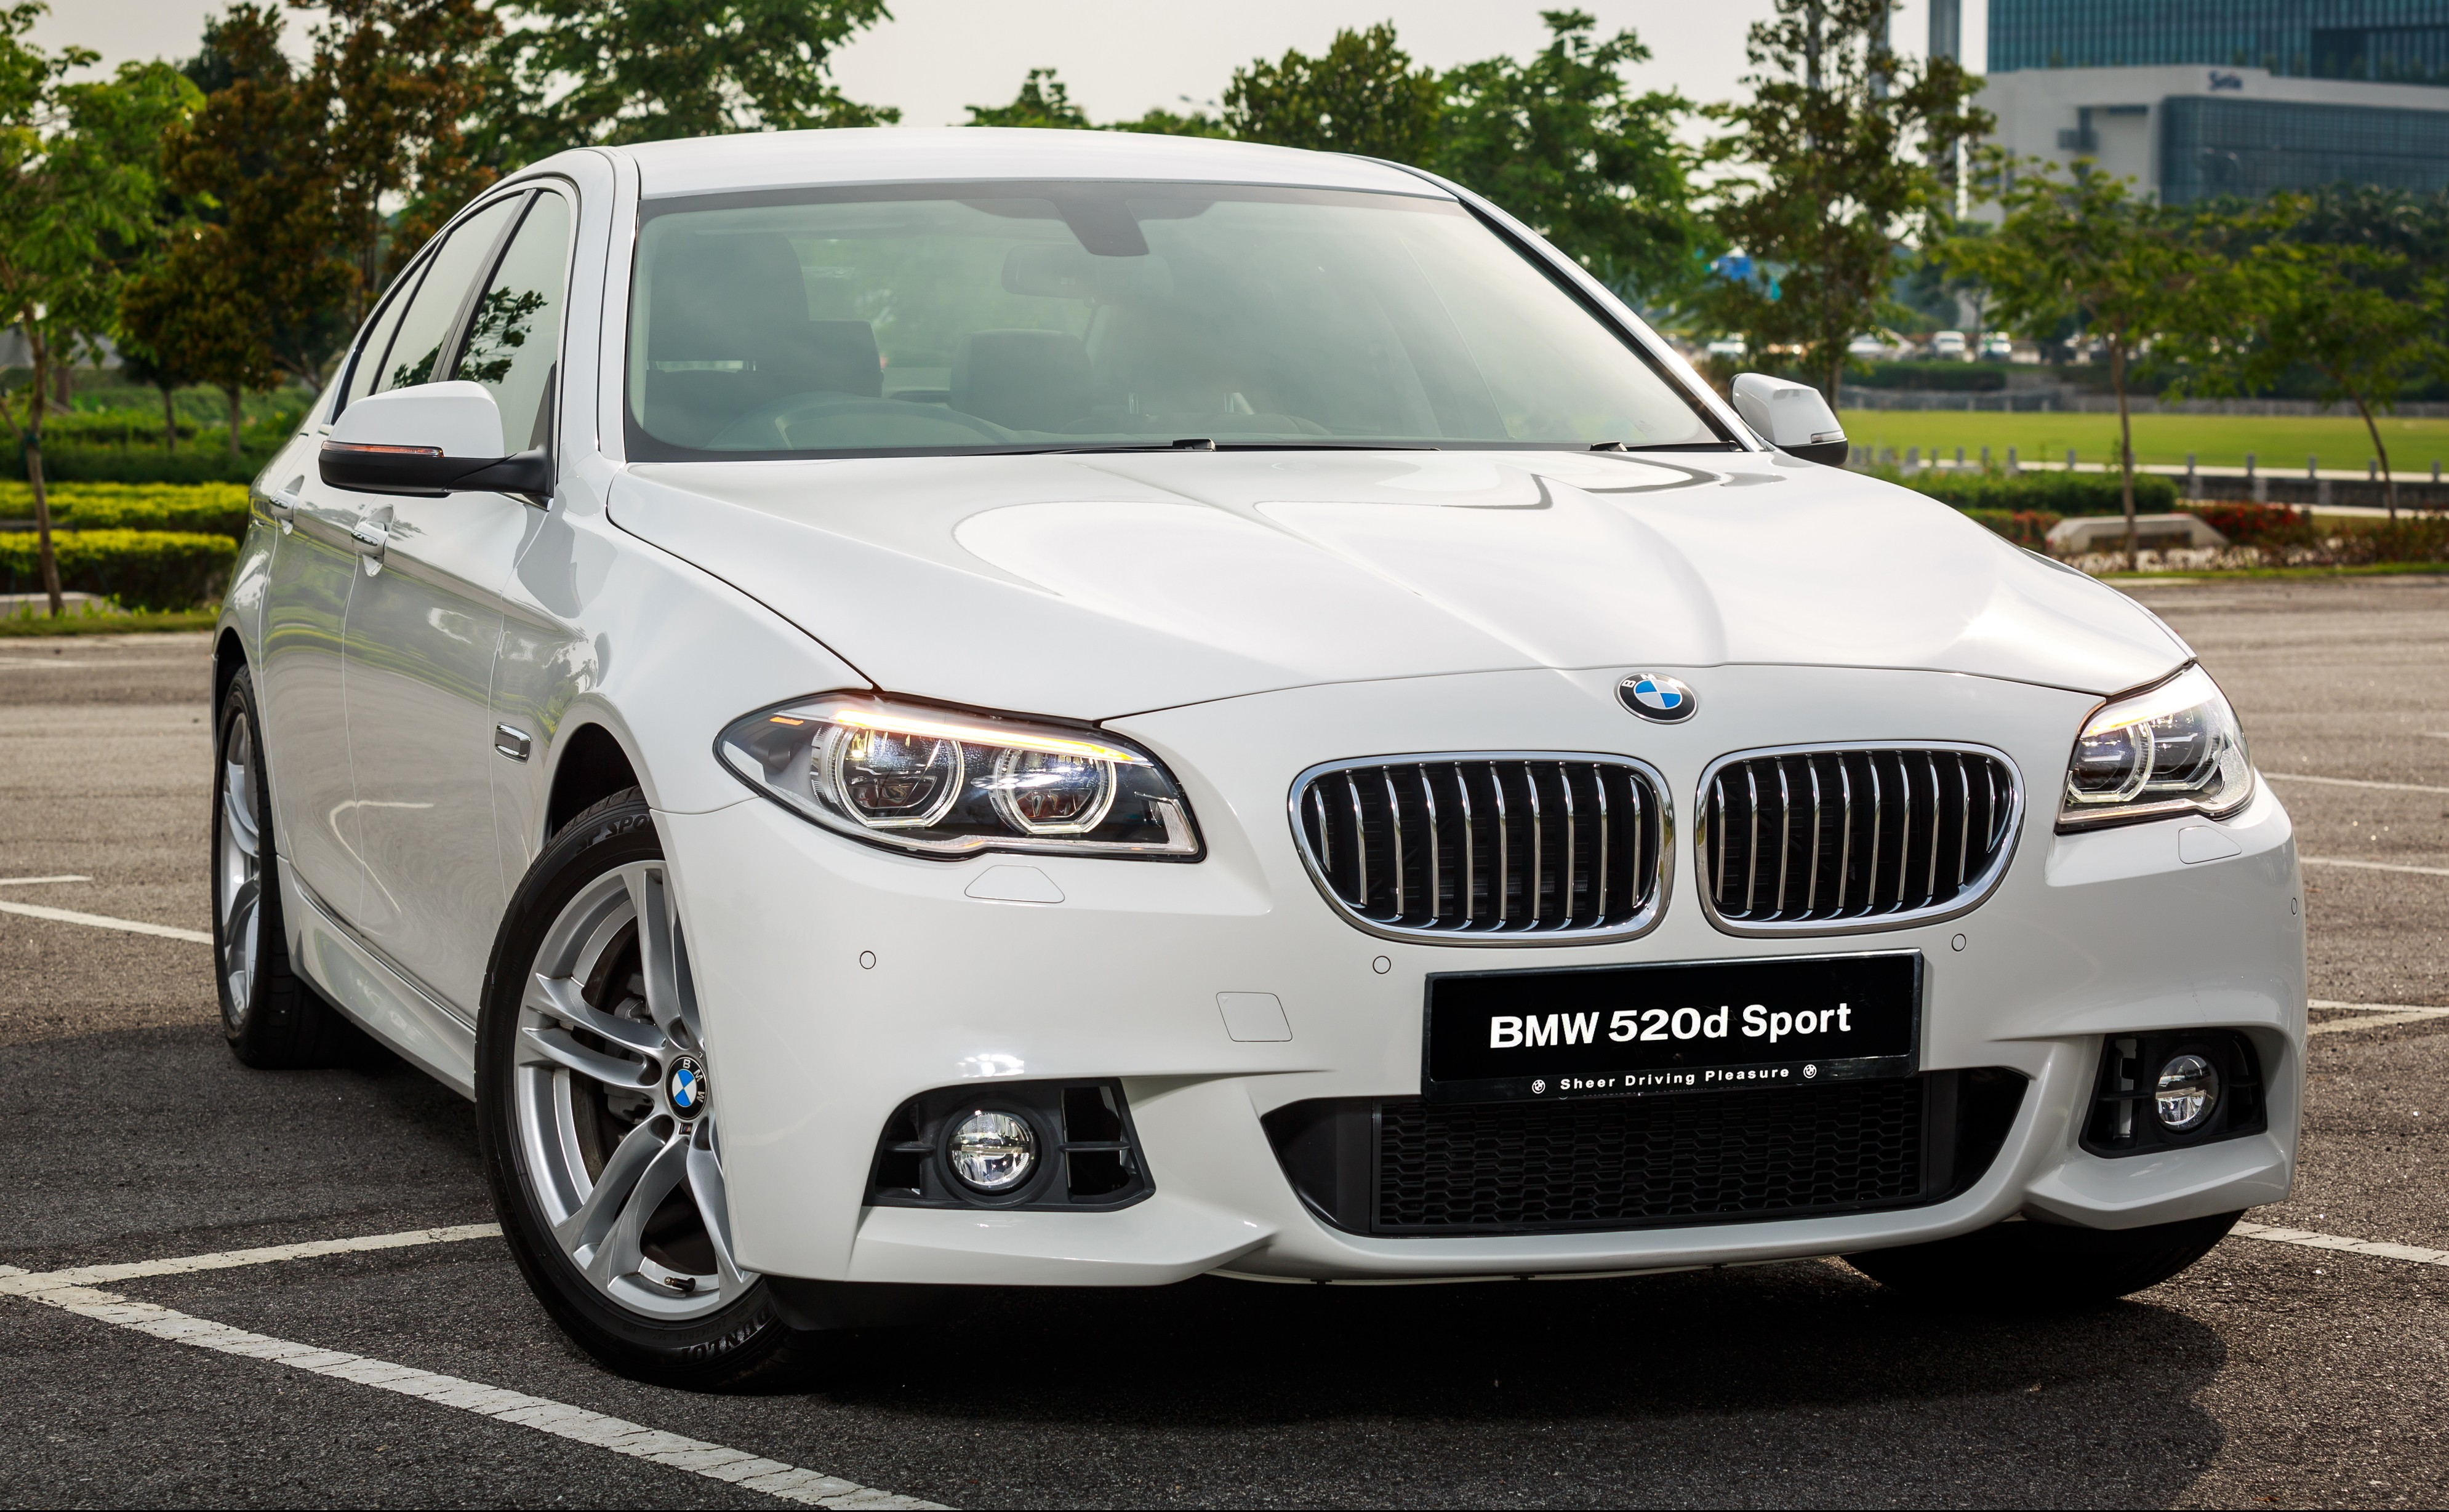 bmw 520d sport introduced in malaysia 50 units. Black Bedroom Furniture Sets. Home Design Ideas